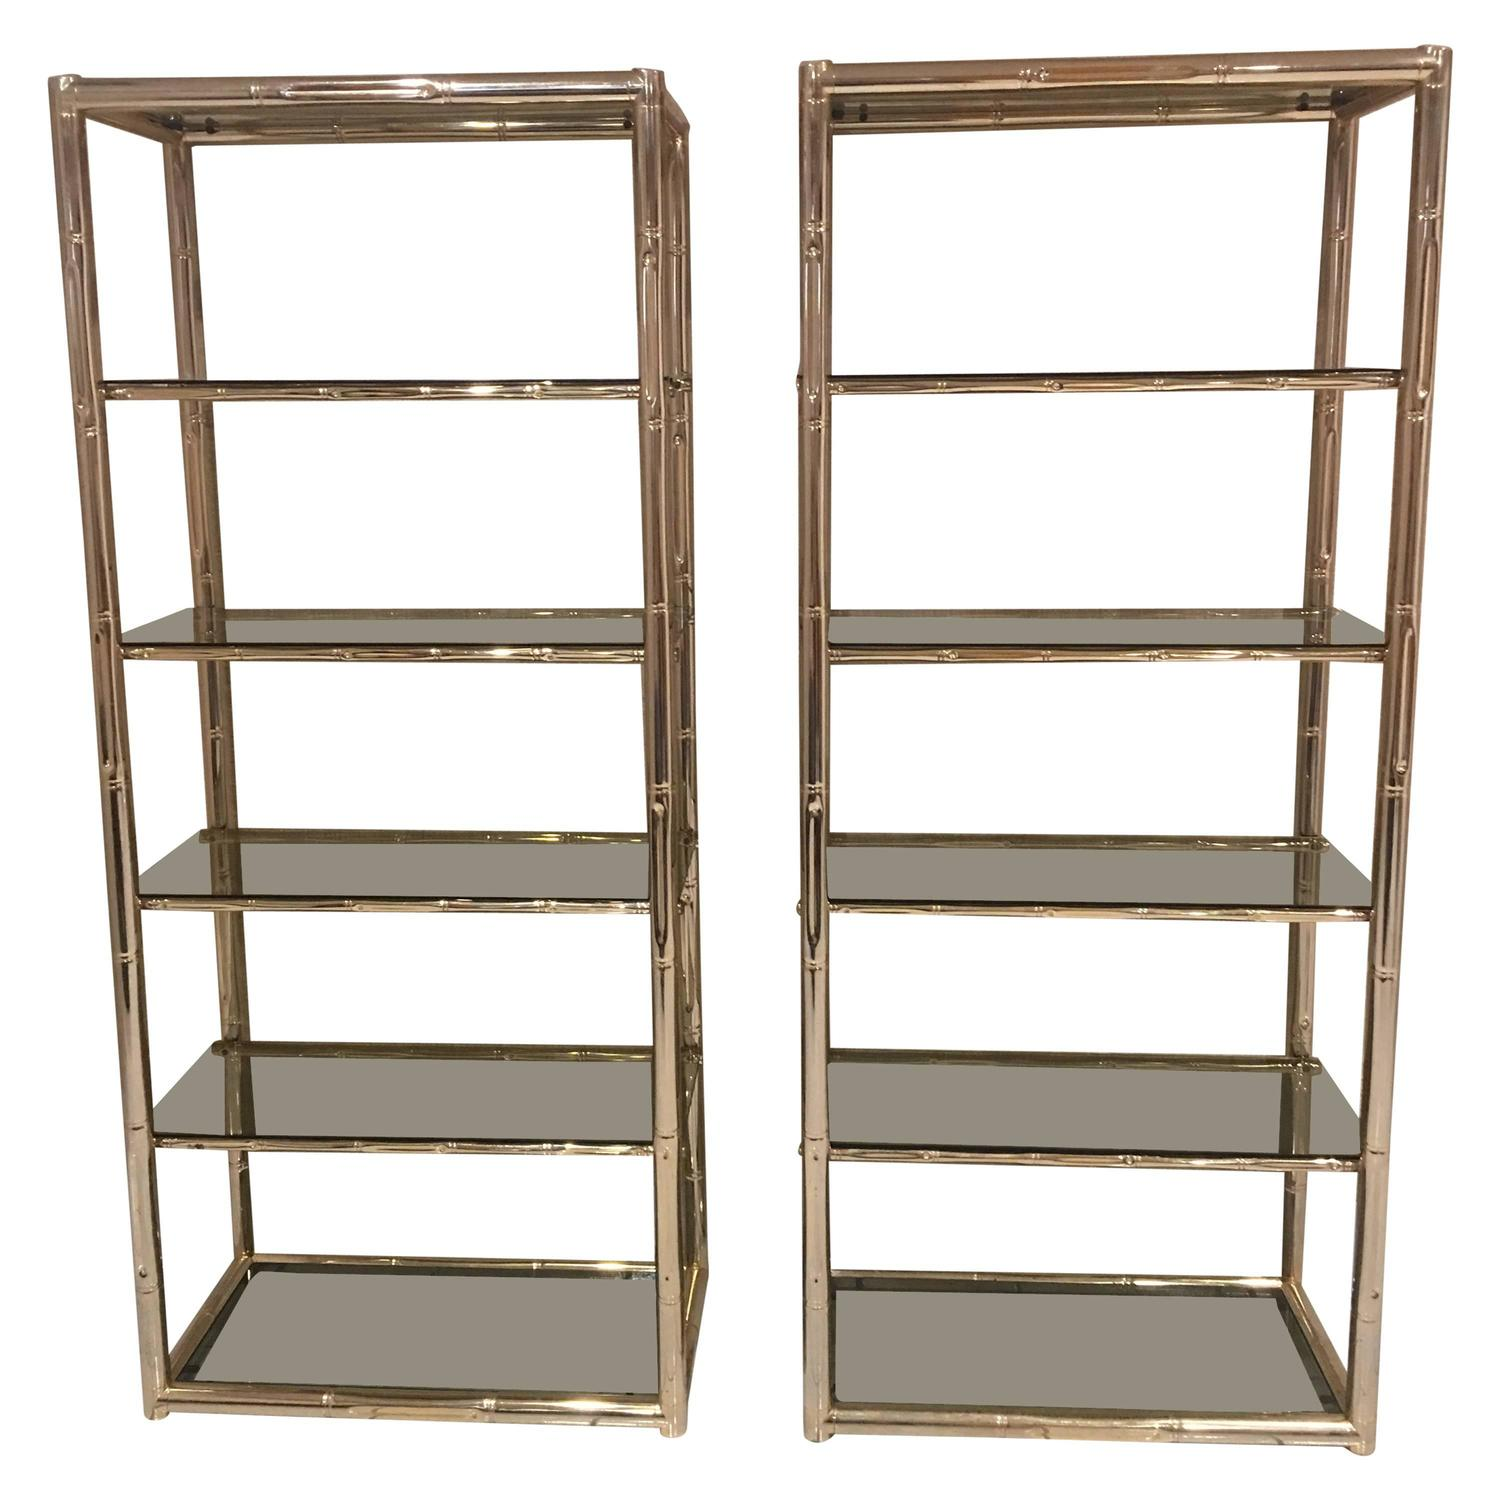 Hollywood Regency Shelves - 50 For Sale at 1stdibs